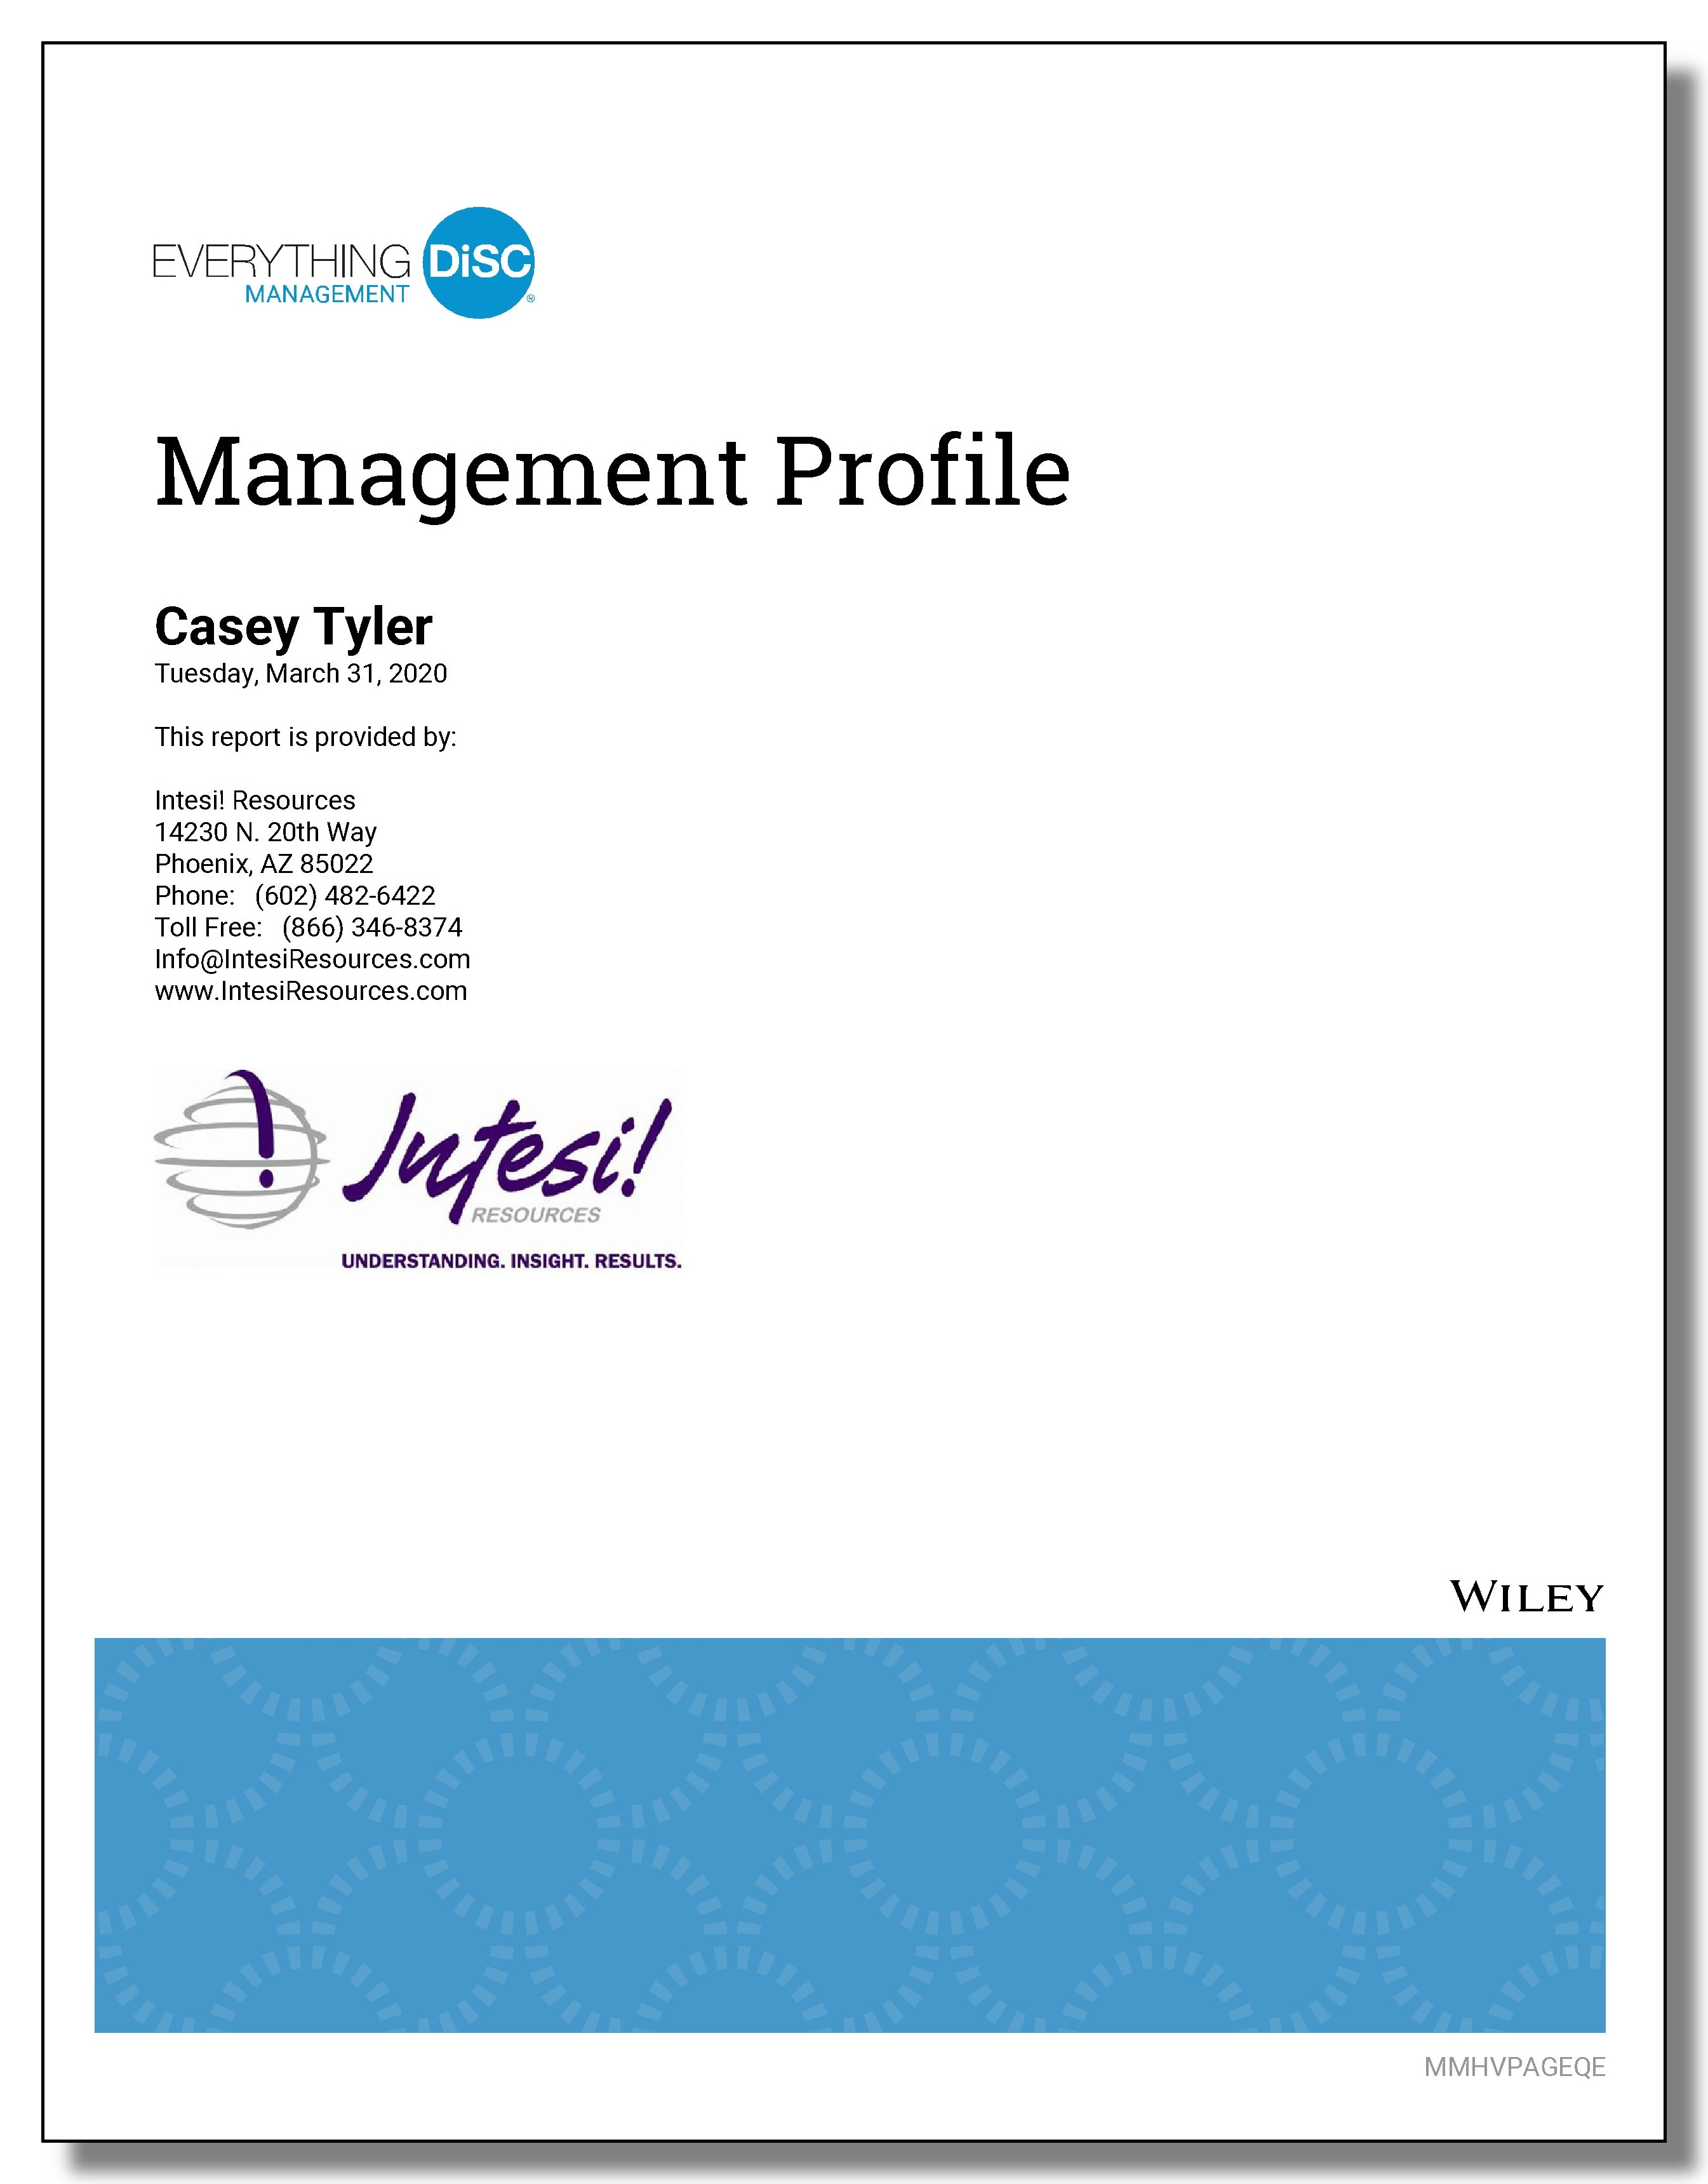 Use the Everything  DiSC Management Profile to hire managers.